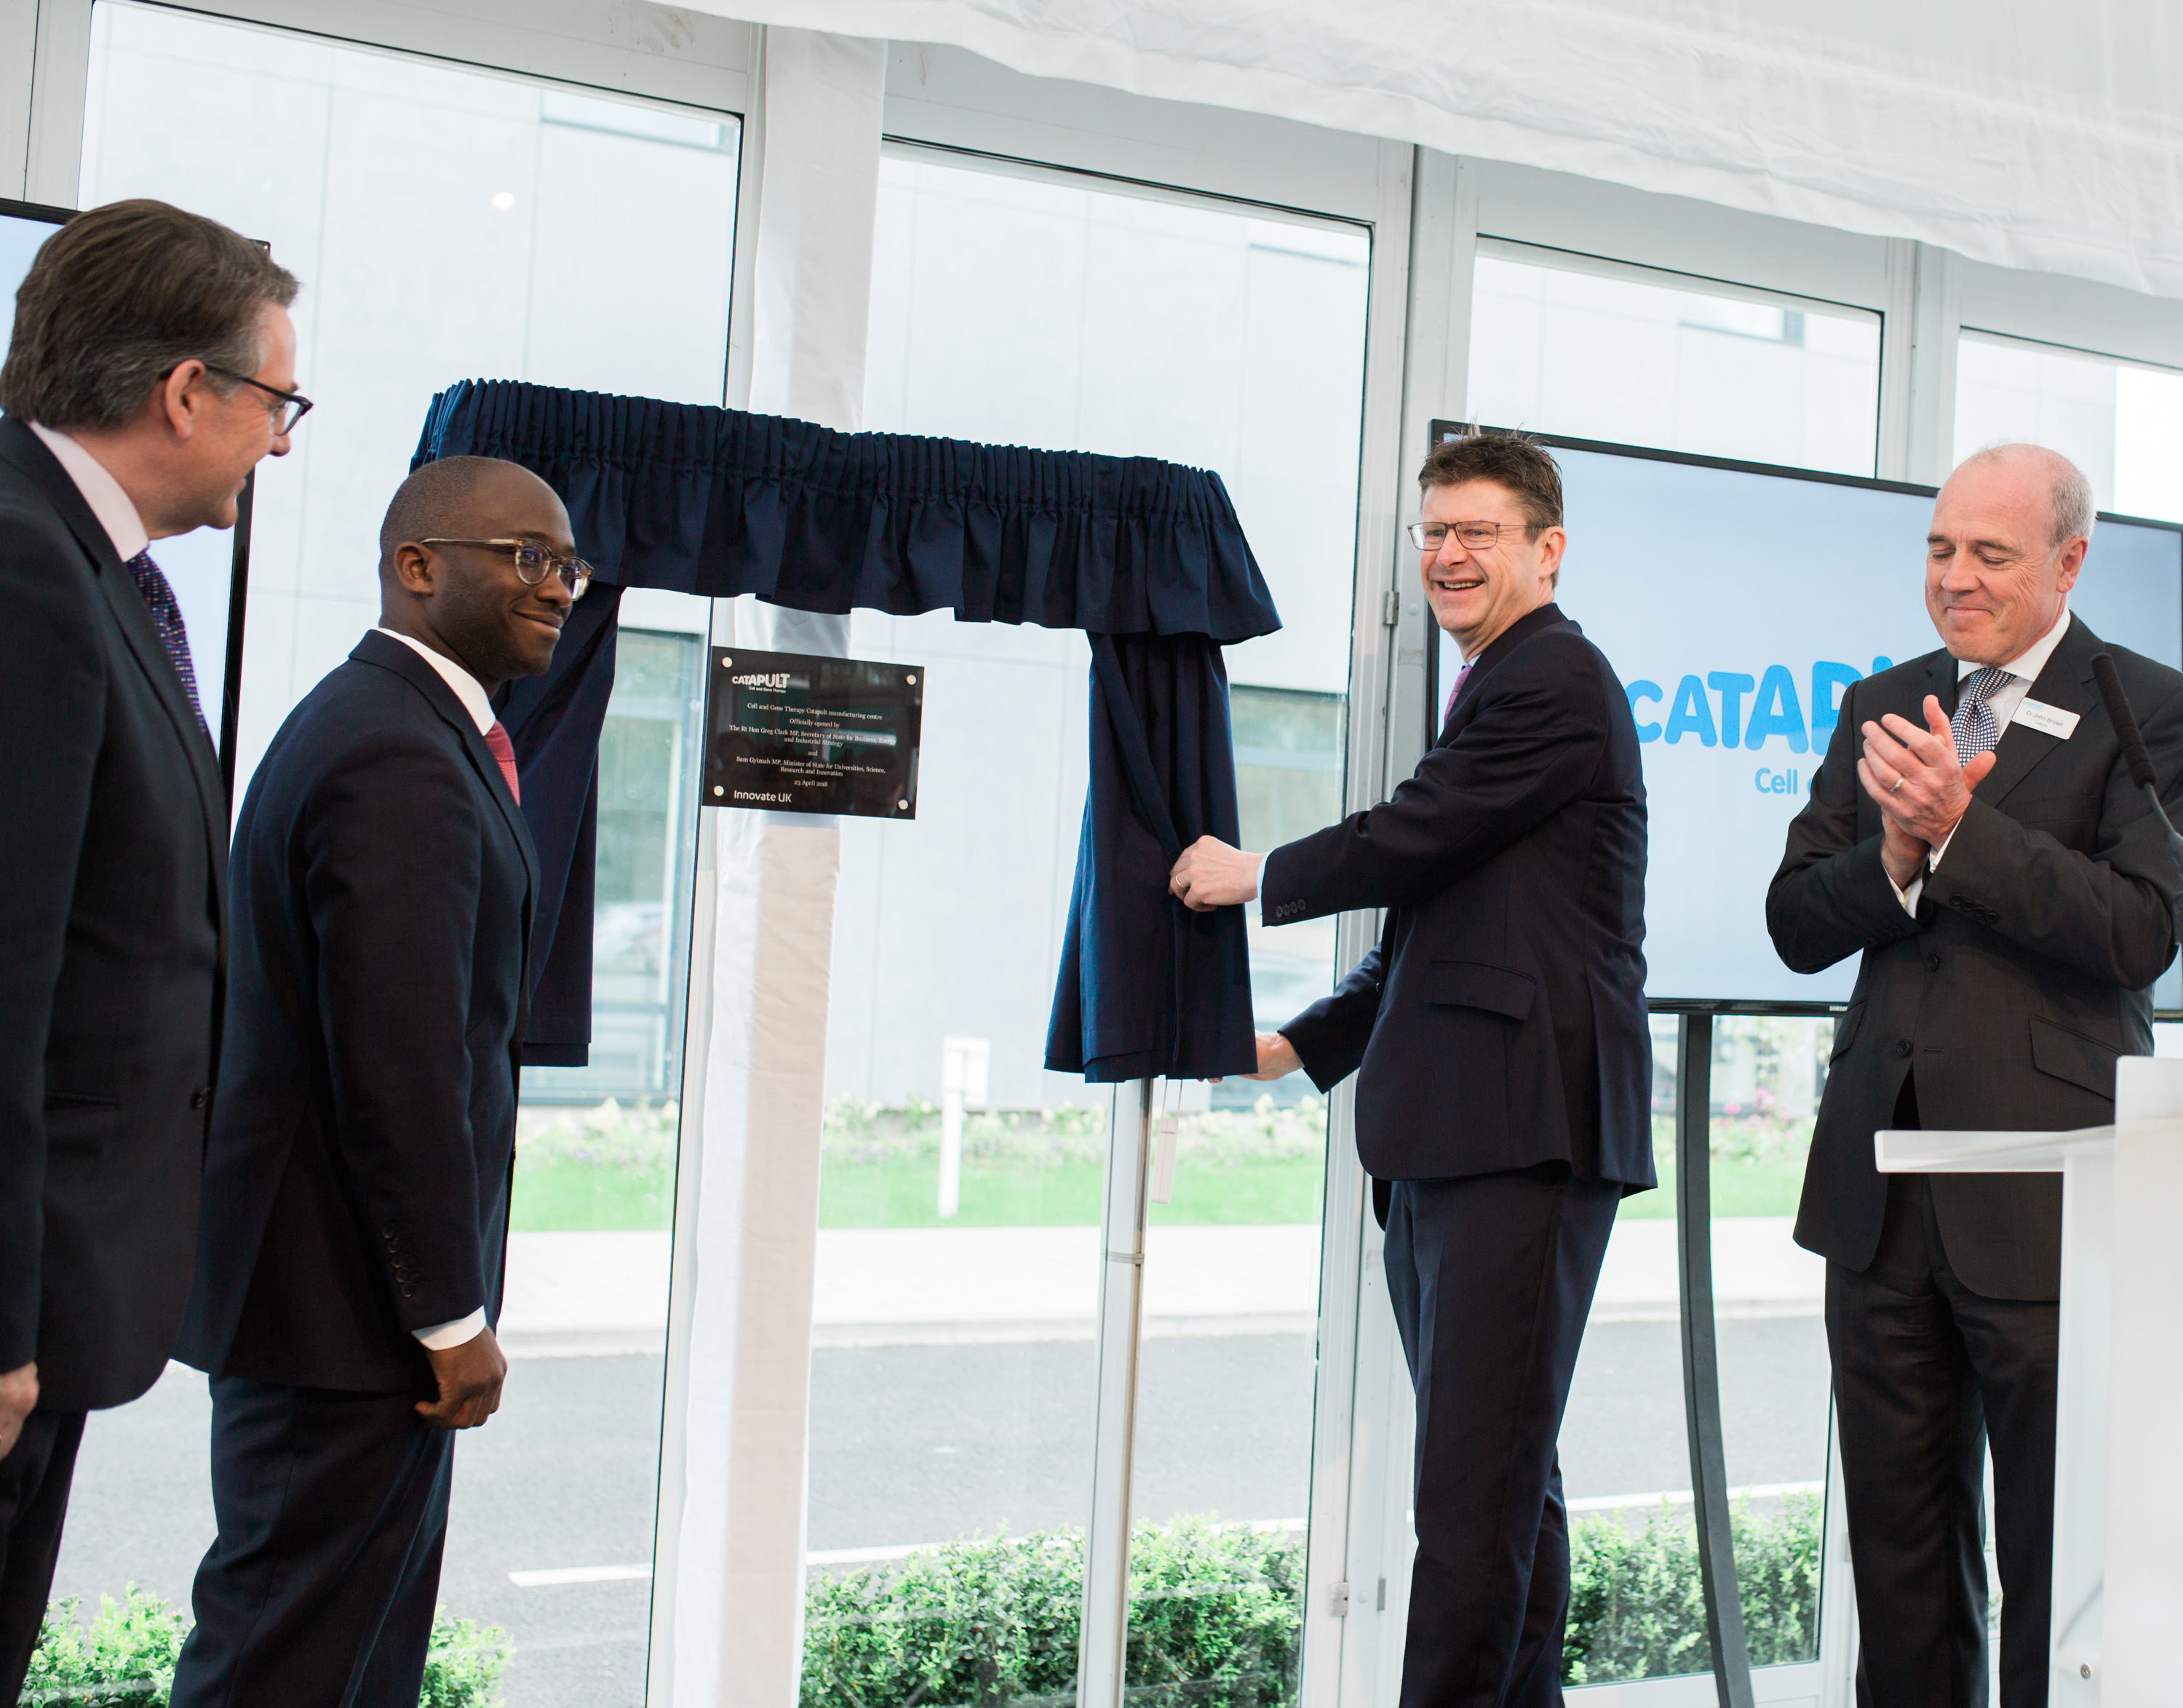 CGT Catapult manufacturing centre opening